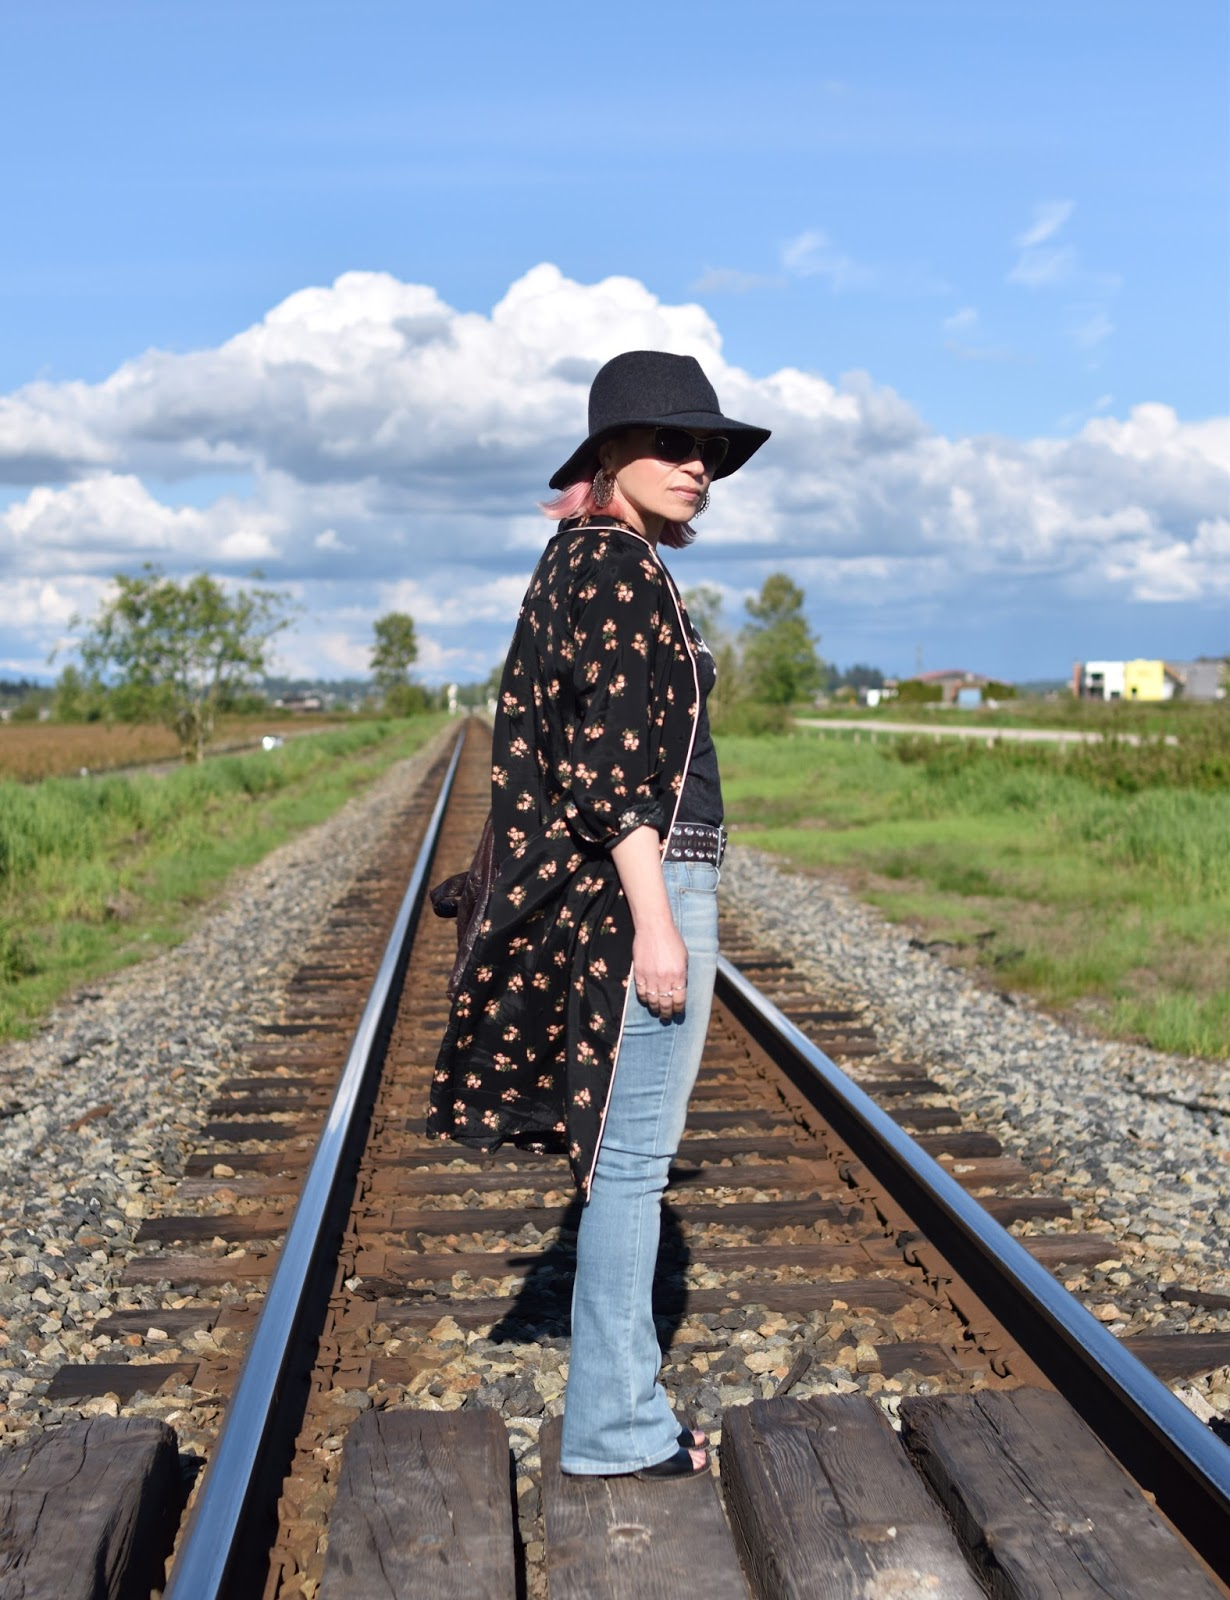 Monika Faulkner outfit inspiration - floral shirtdress, flare jeans, floppy hat